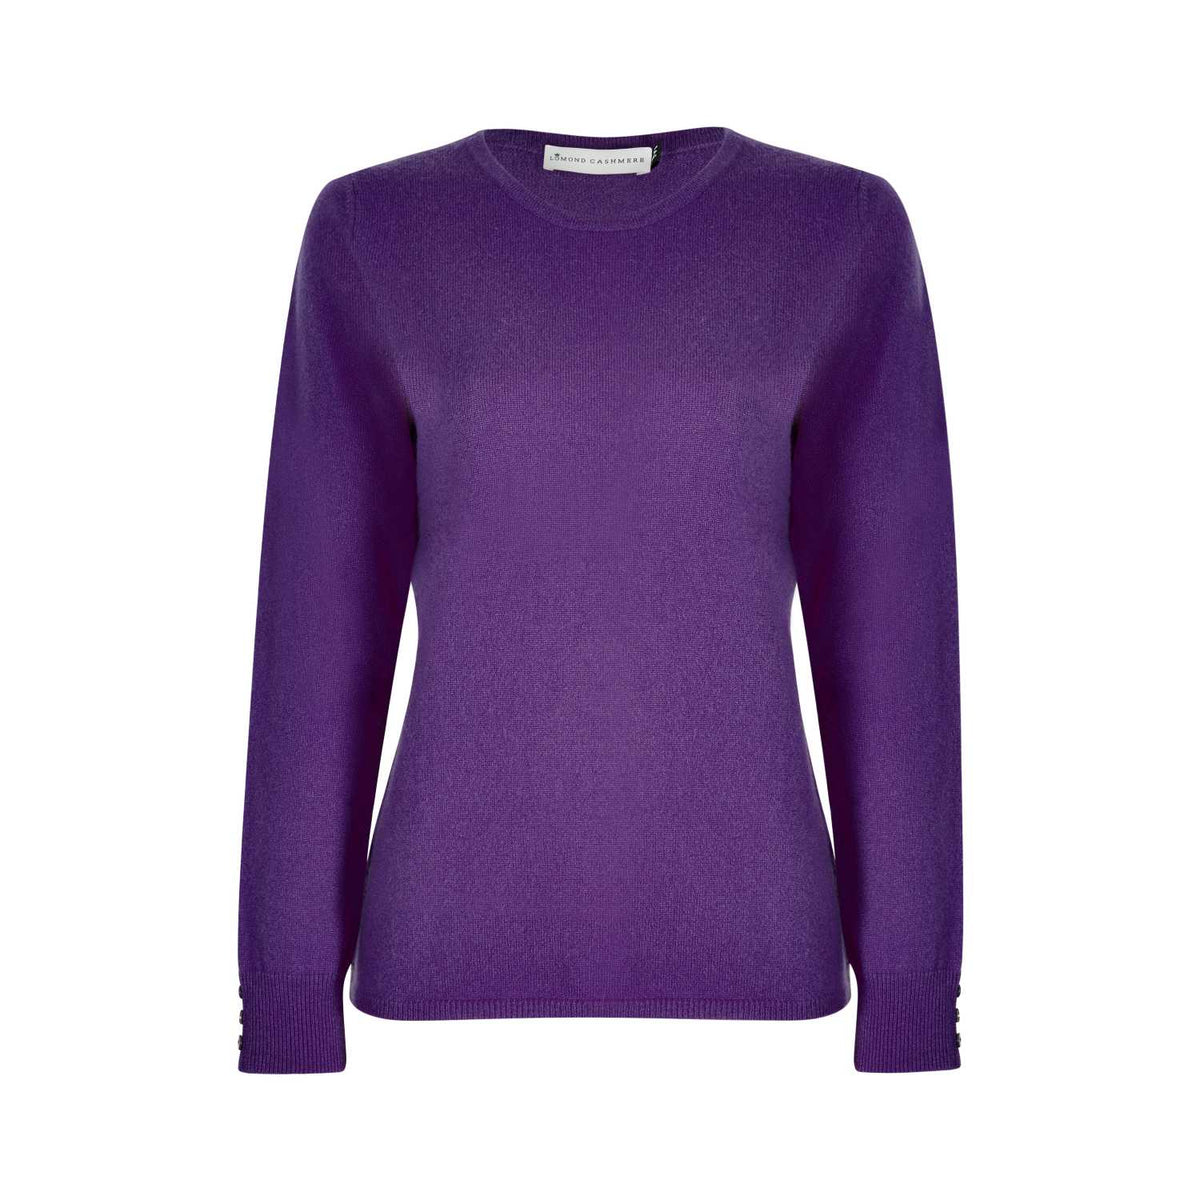 Lomond Cashmere | Ladies 2-Ply Cashmere Round Neck | Royal Purple | Shop now at The Cashmere Choice | London